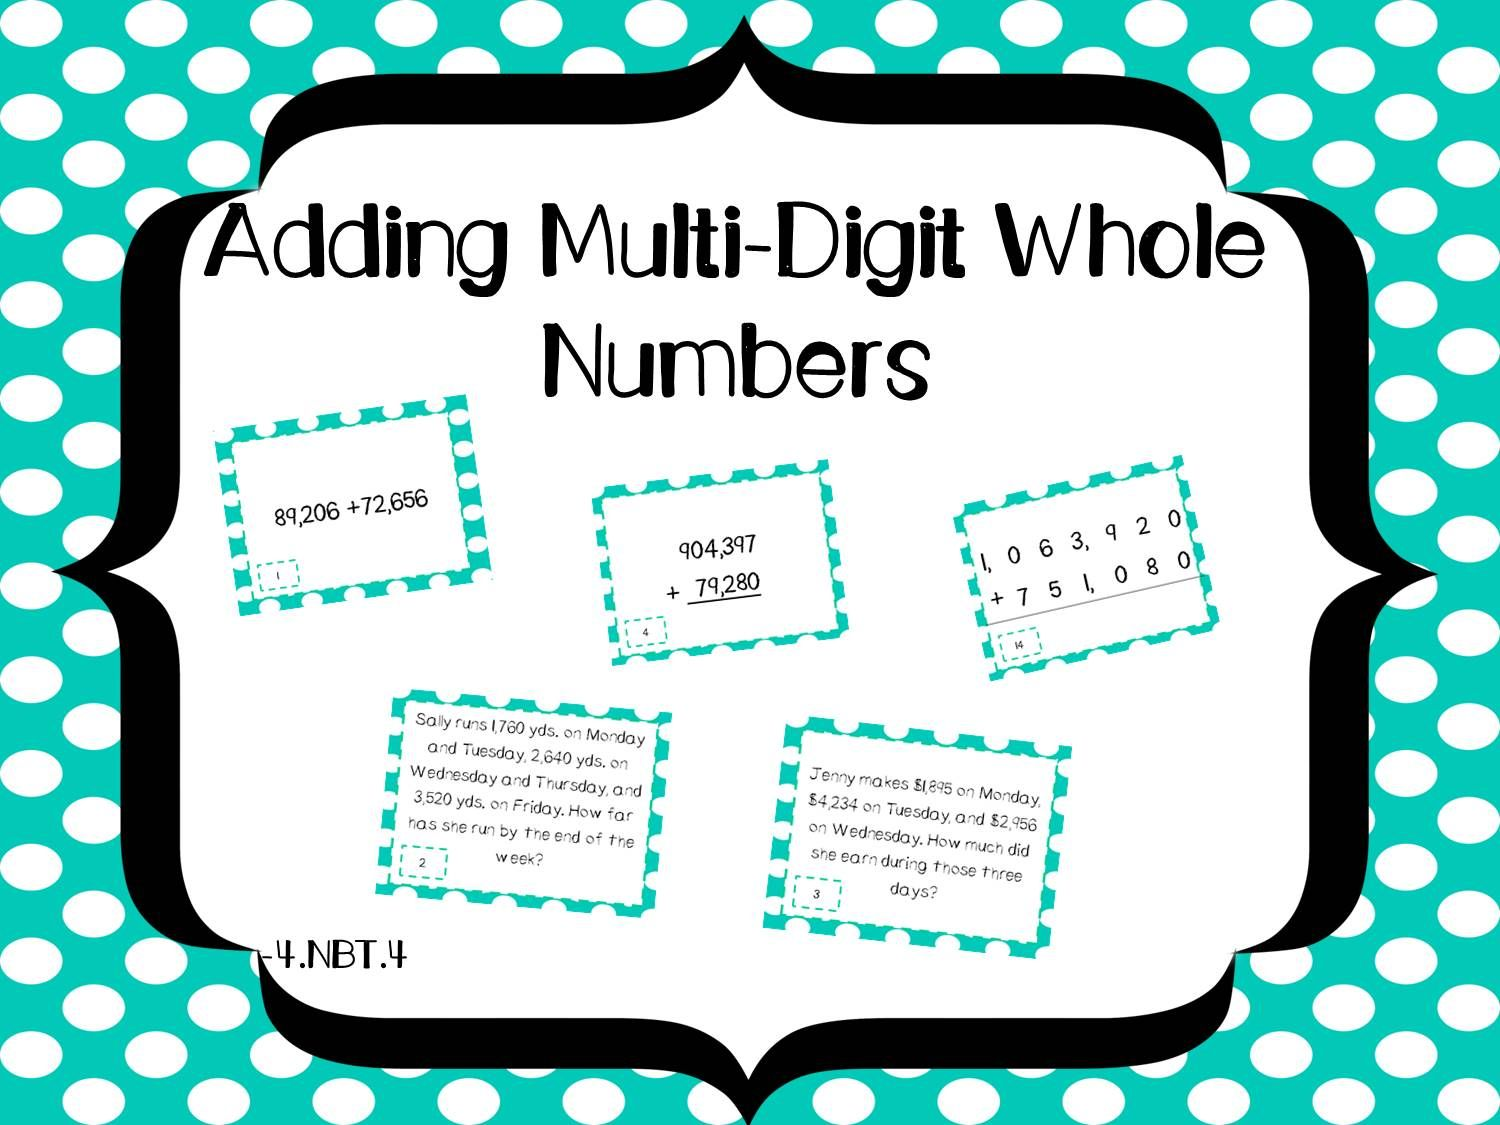 Have your students practice and review adding multi-digit whole numbers using these task cards. These come in handy for test review, centers, whole class practice and more!  This packet contains: +32 task cards including word problems +answer key  See more at smithsonthecoast.blogpot.com